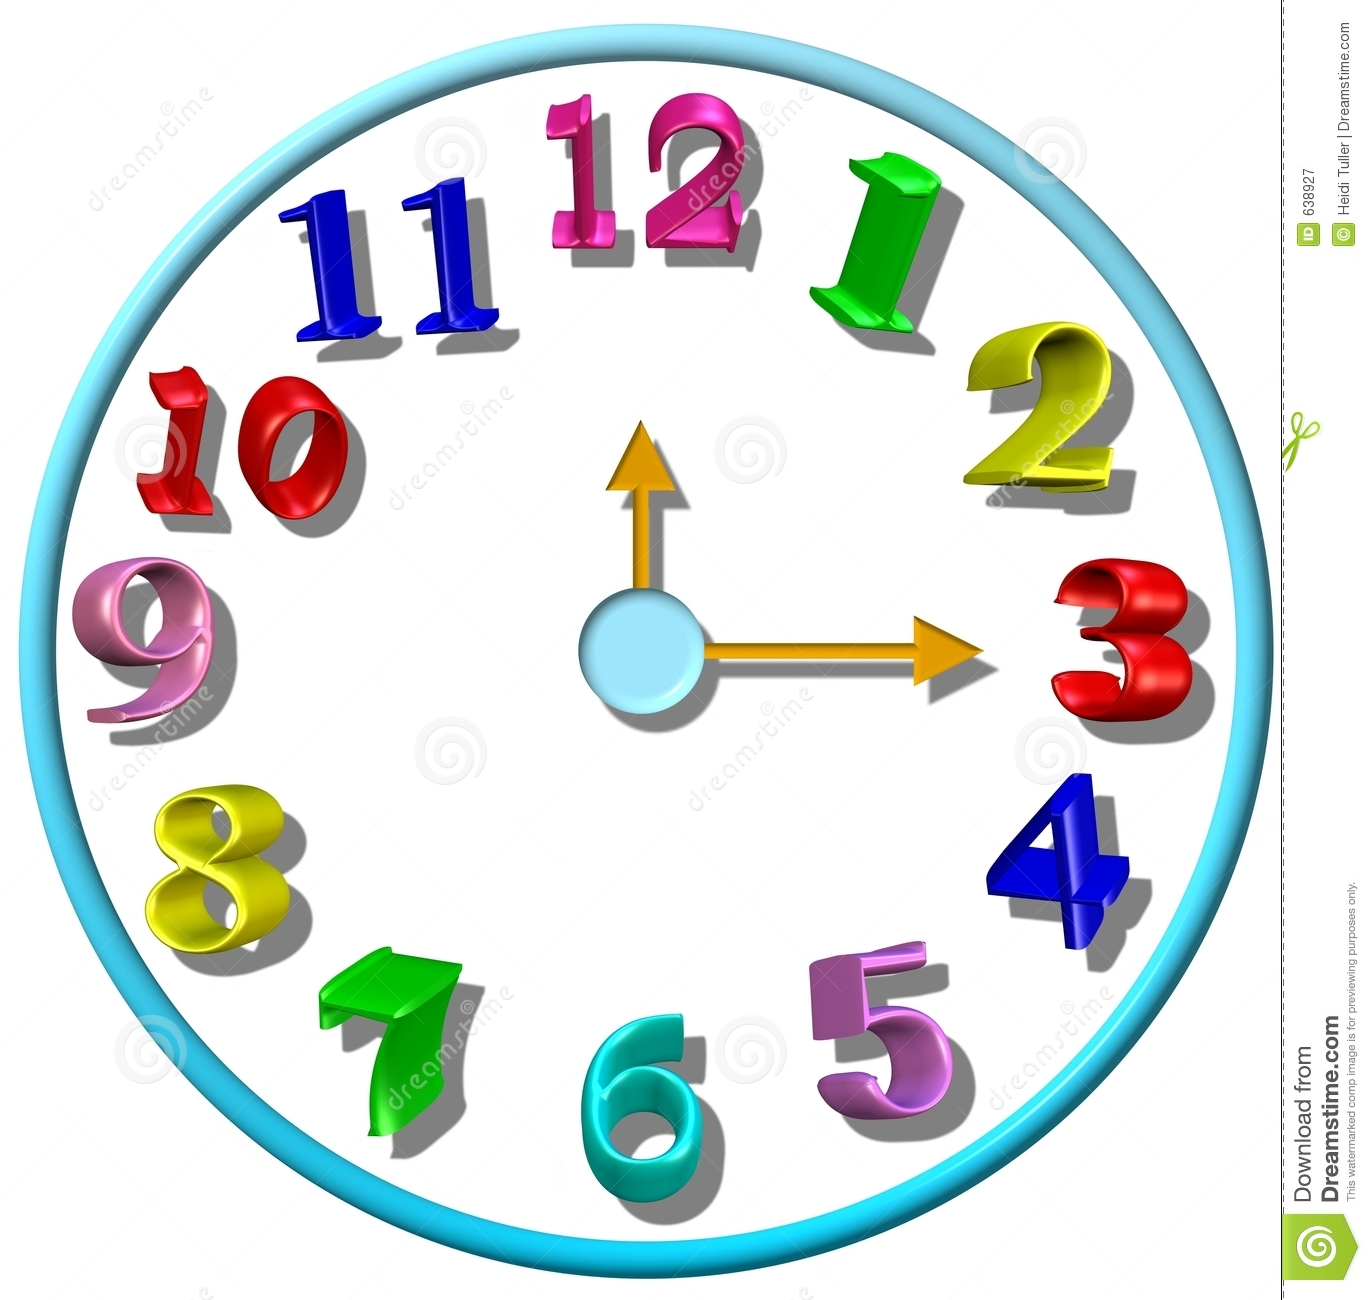 Clock Clipart For Kids | Clipart Panda - Free Clipart Images: www.clipartpanda.com/categories/clock-clipart-for-kids